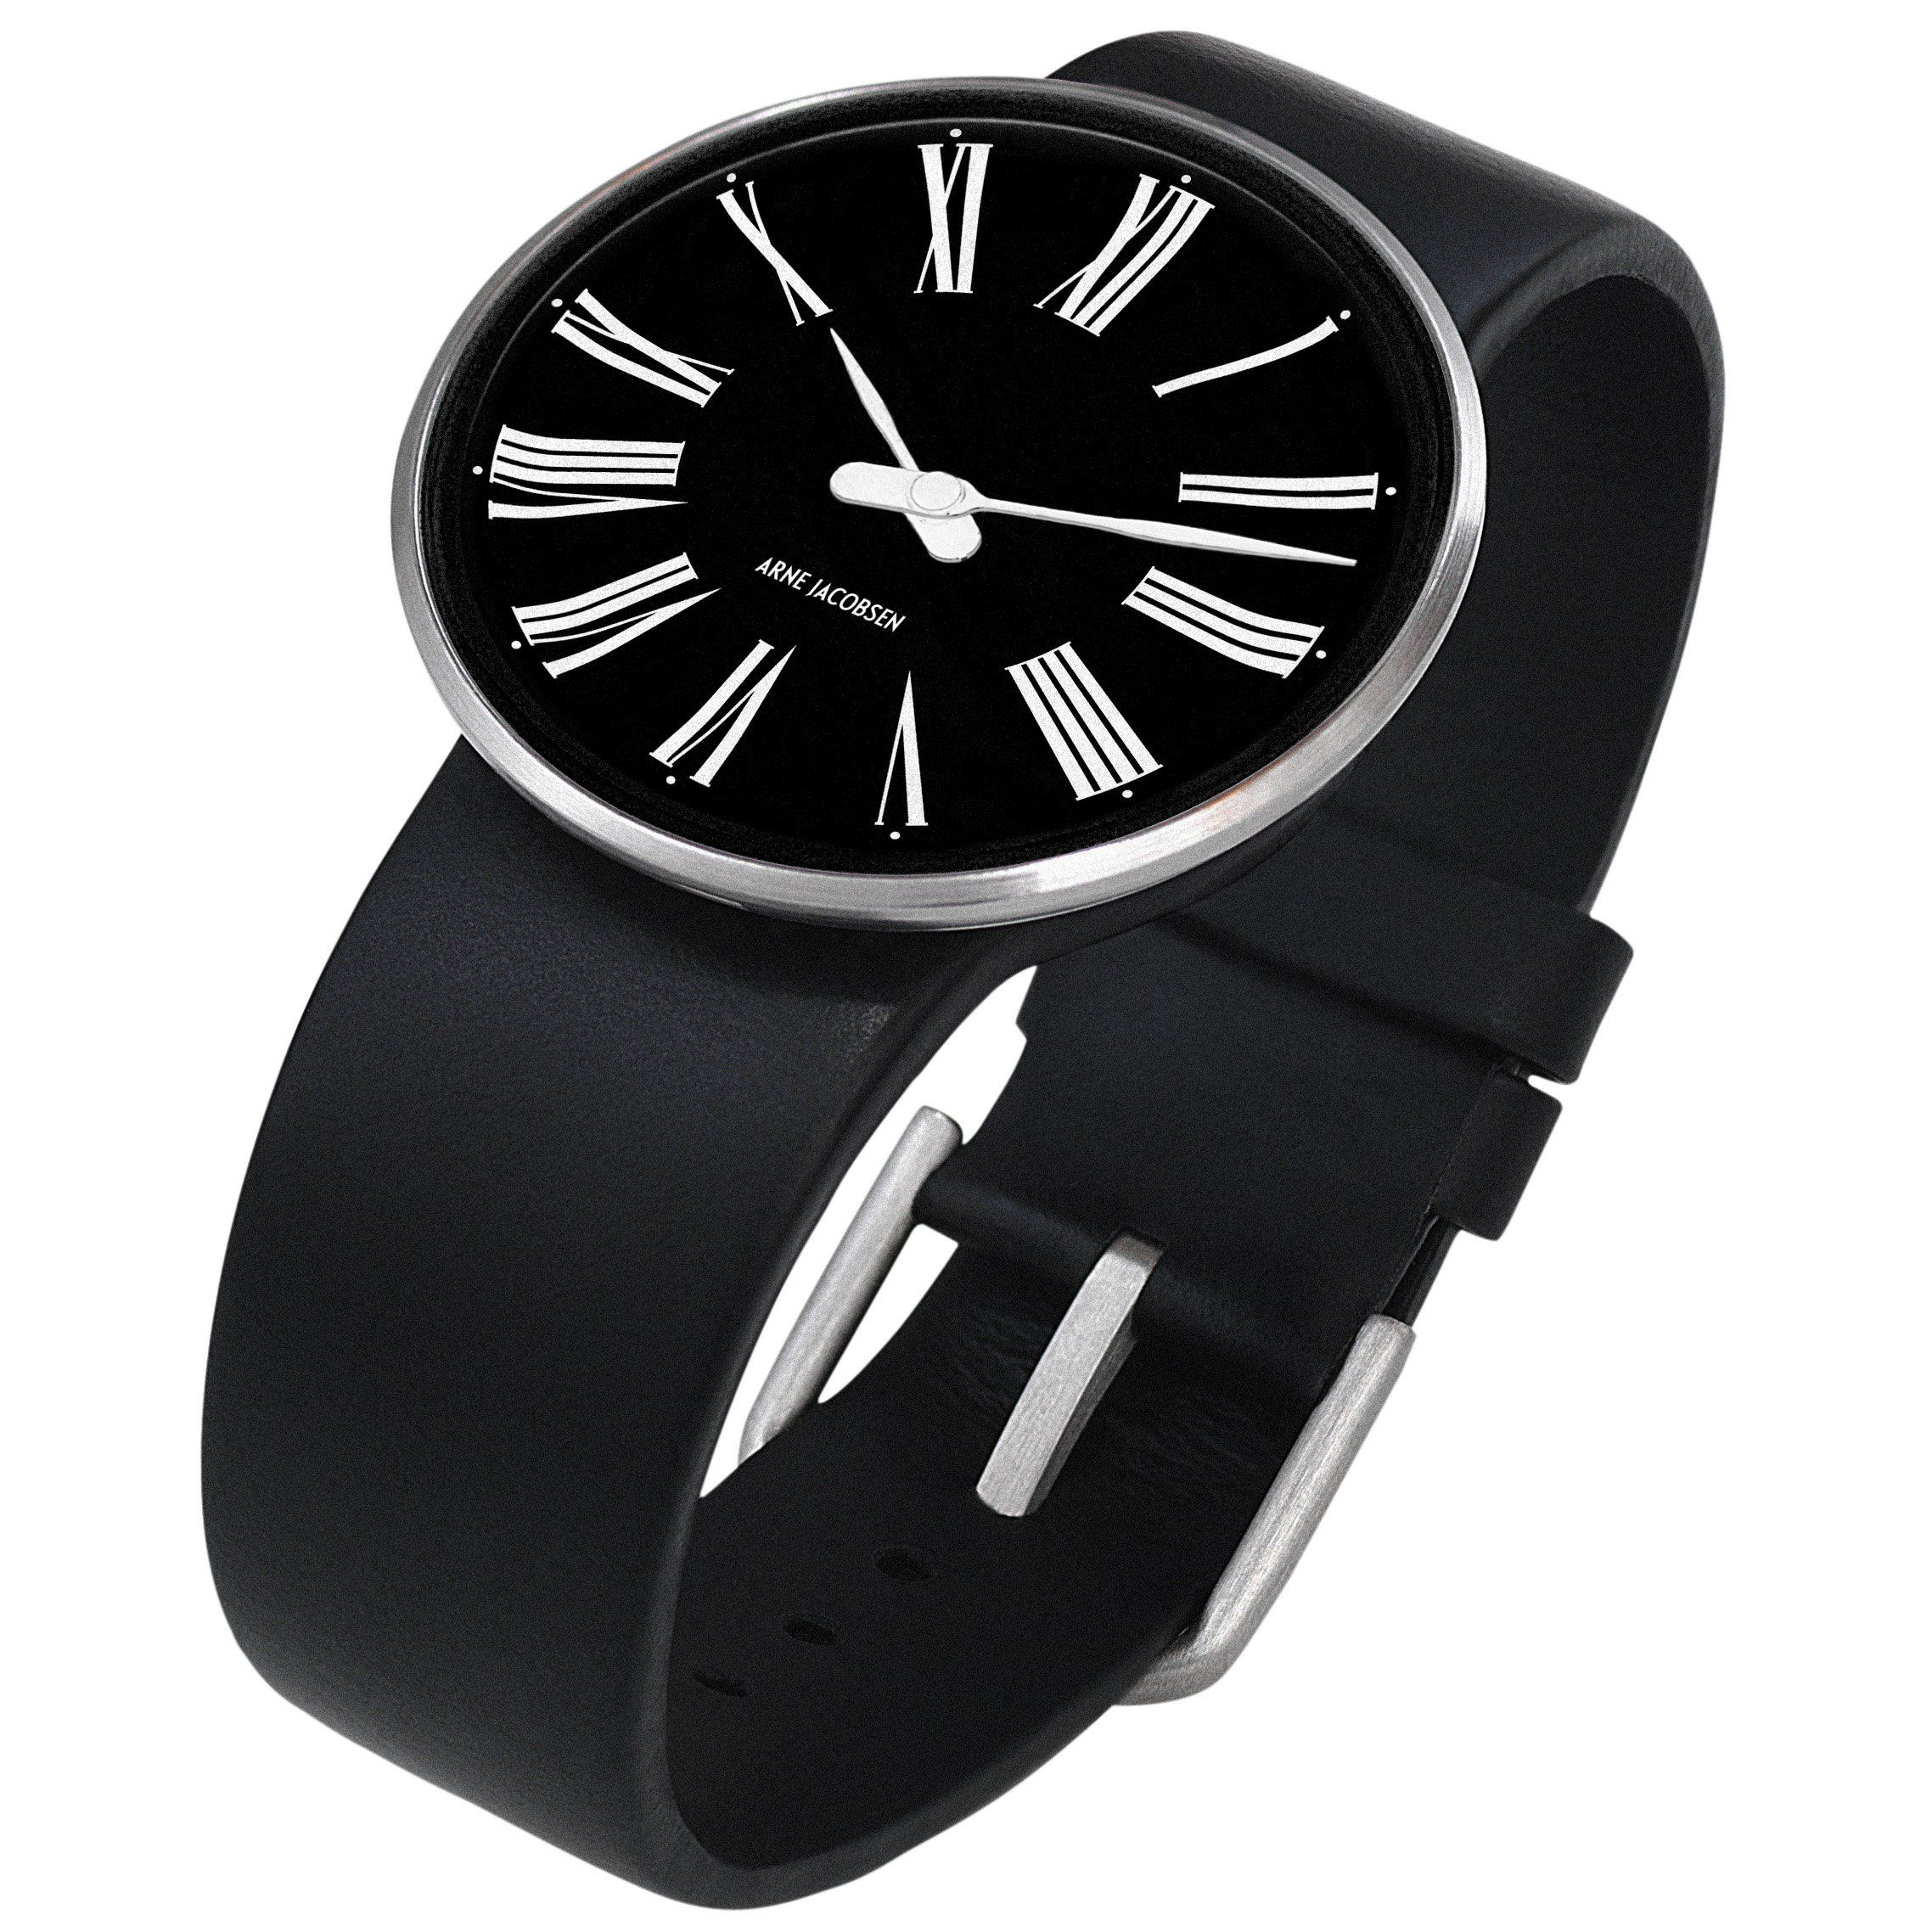 Arne Jacobsen Roman 40mm Wrist Watch I 2019 Ure Watches Arne